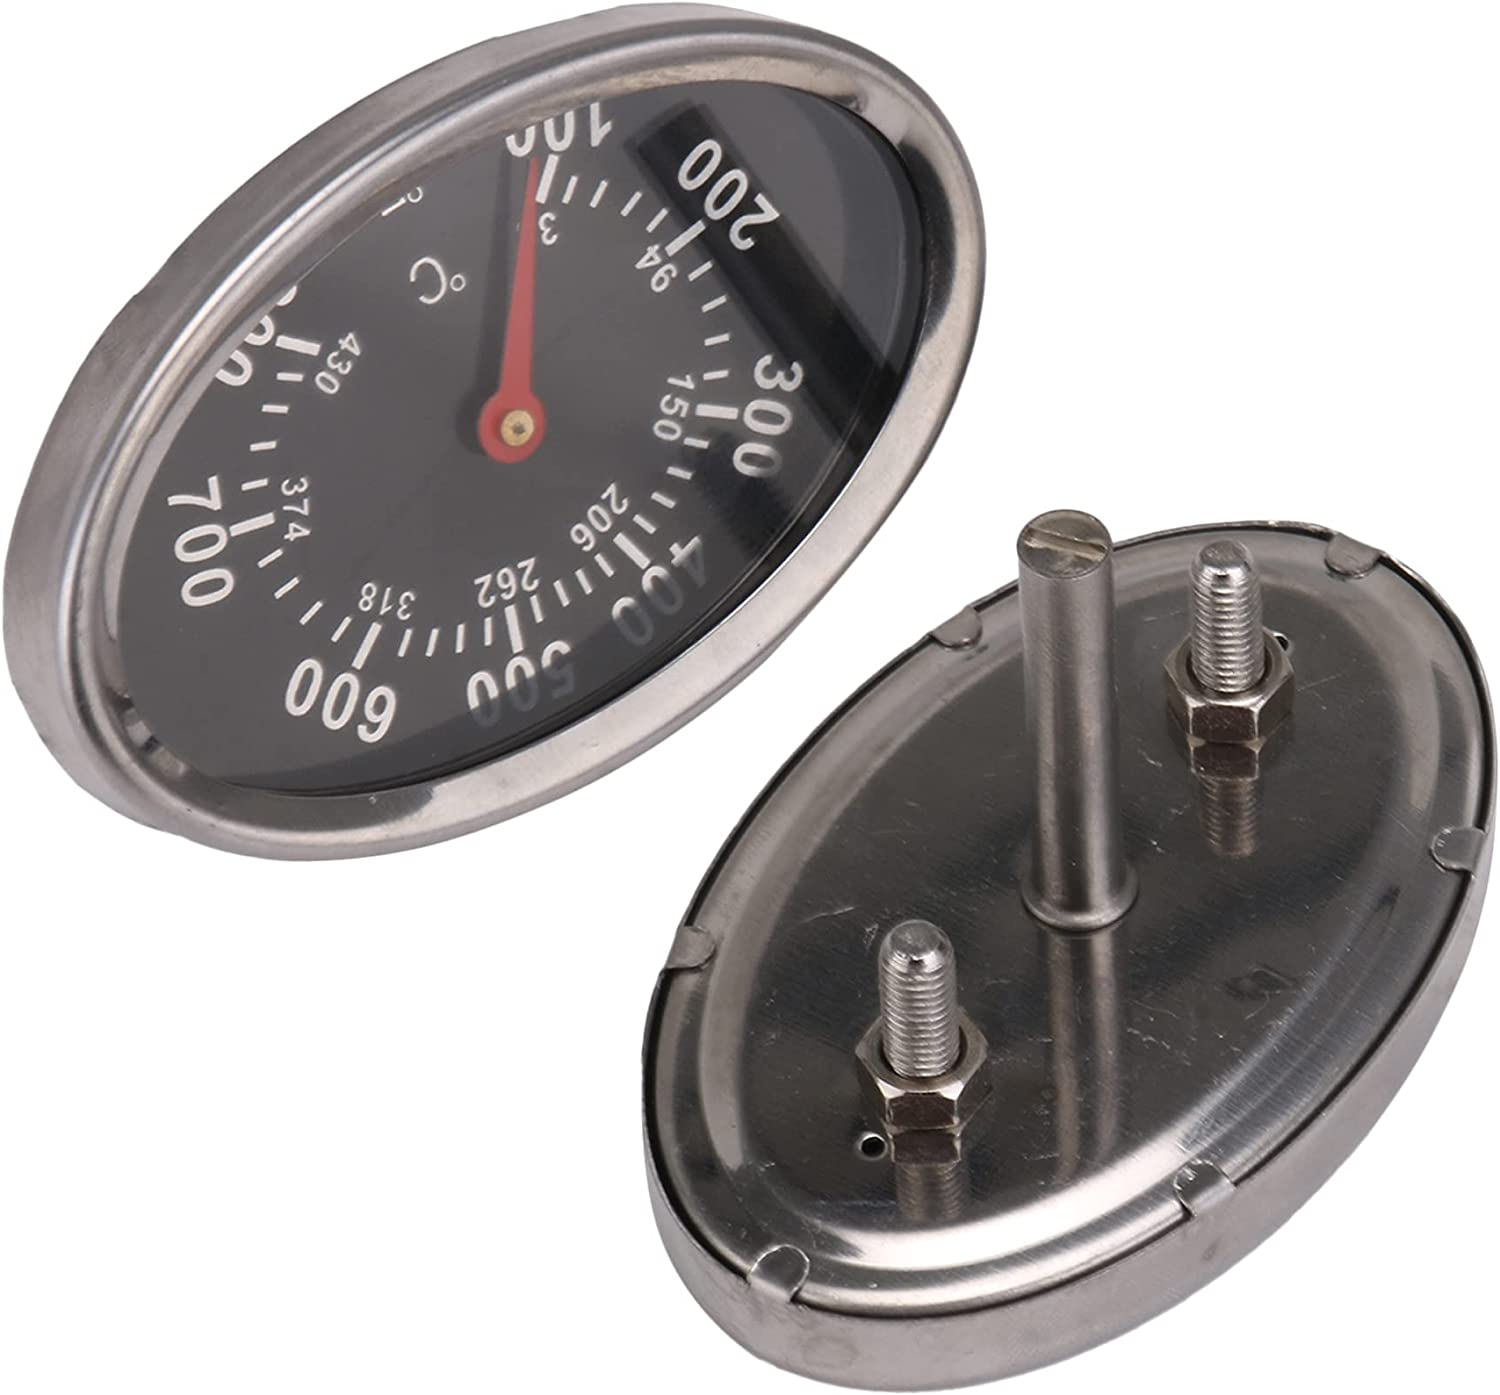 RDEXP Ranking TOP12 2PCS Barbecue Thermometer Virginia Beach Mall 100-800 Replacement for ℉ G